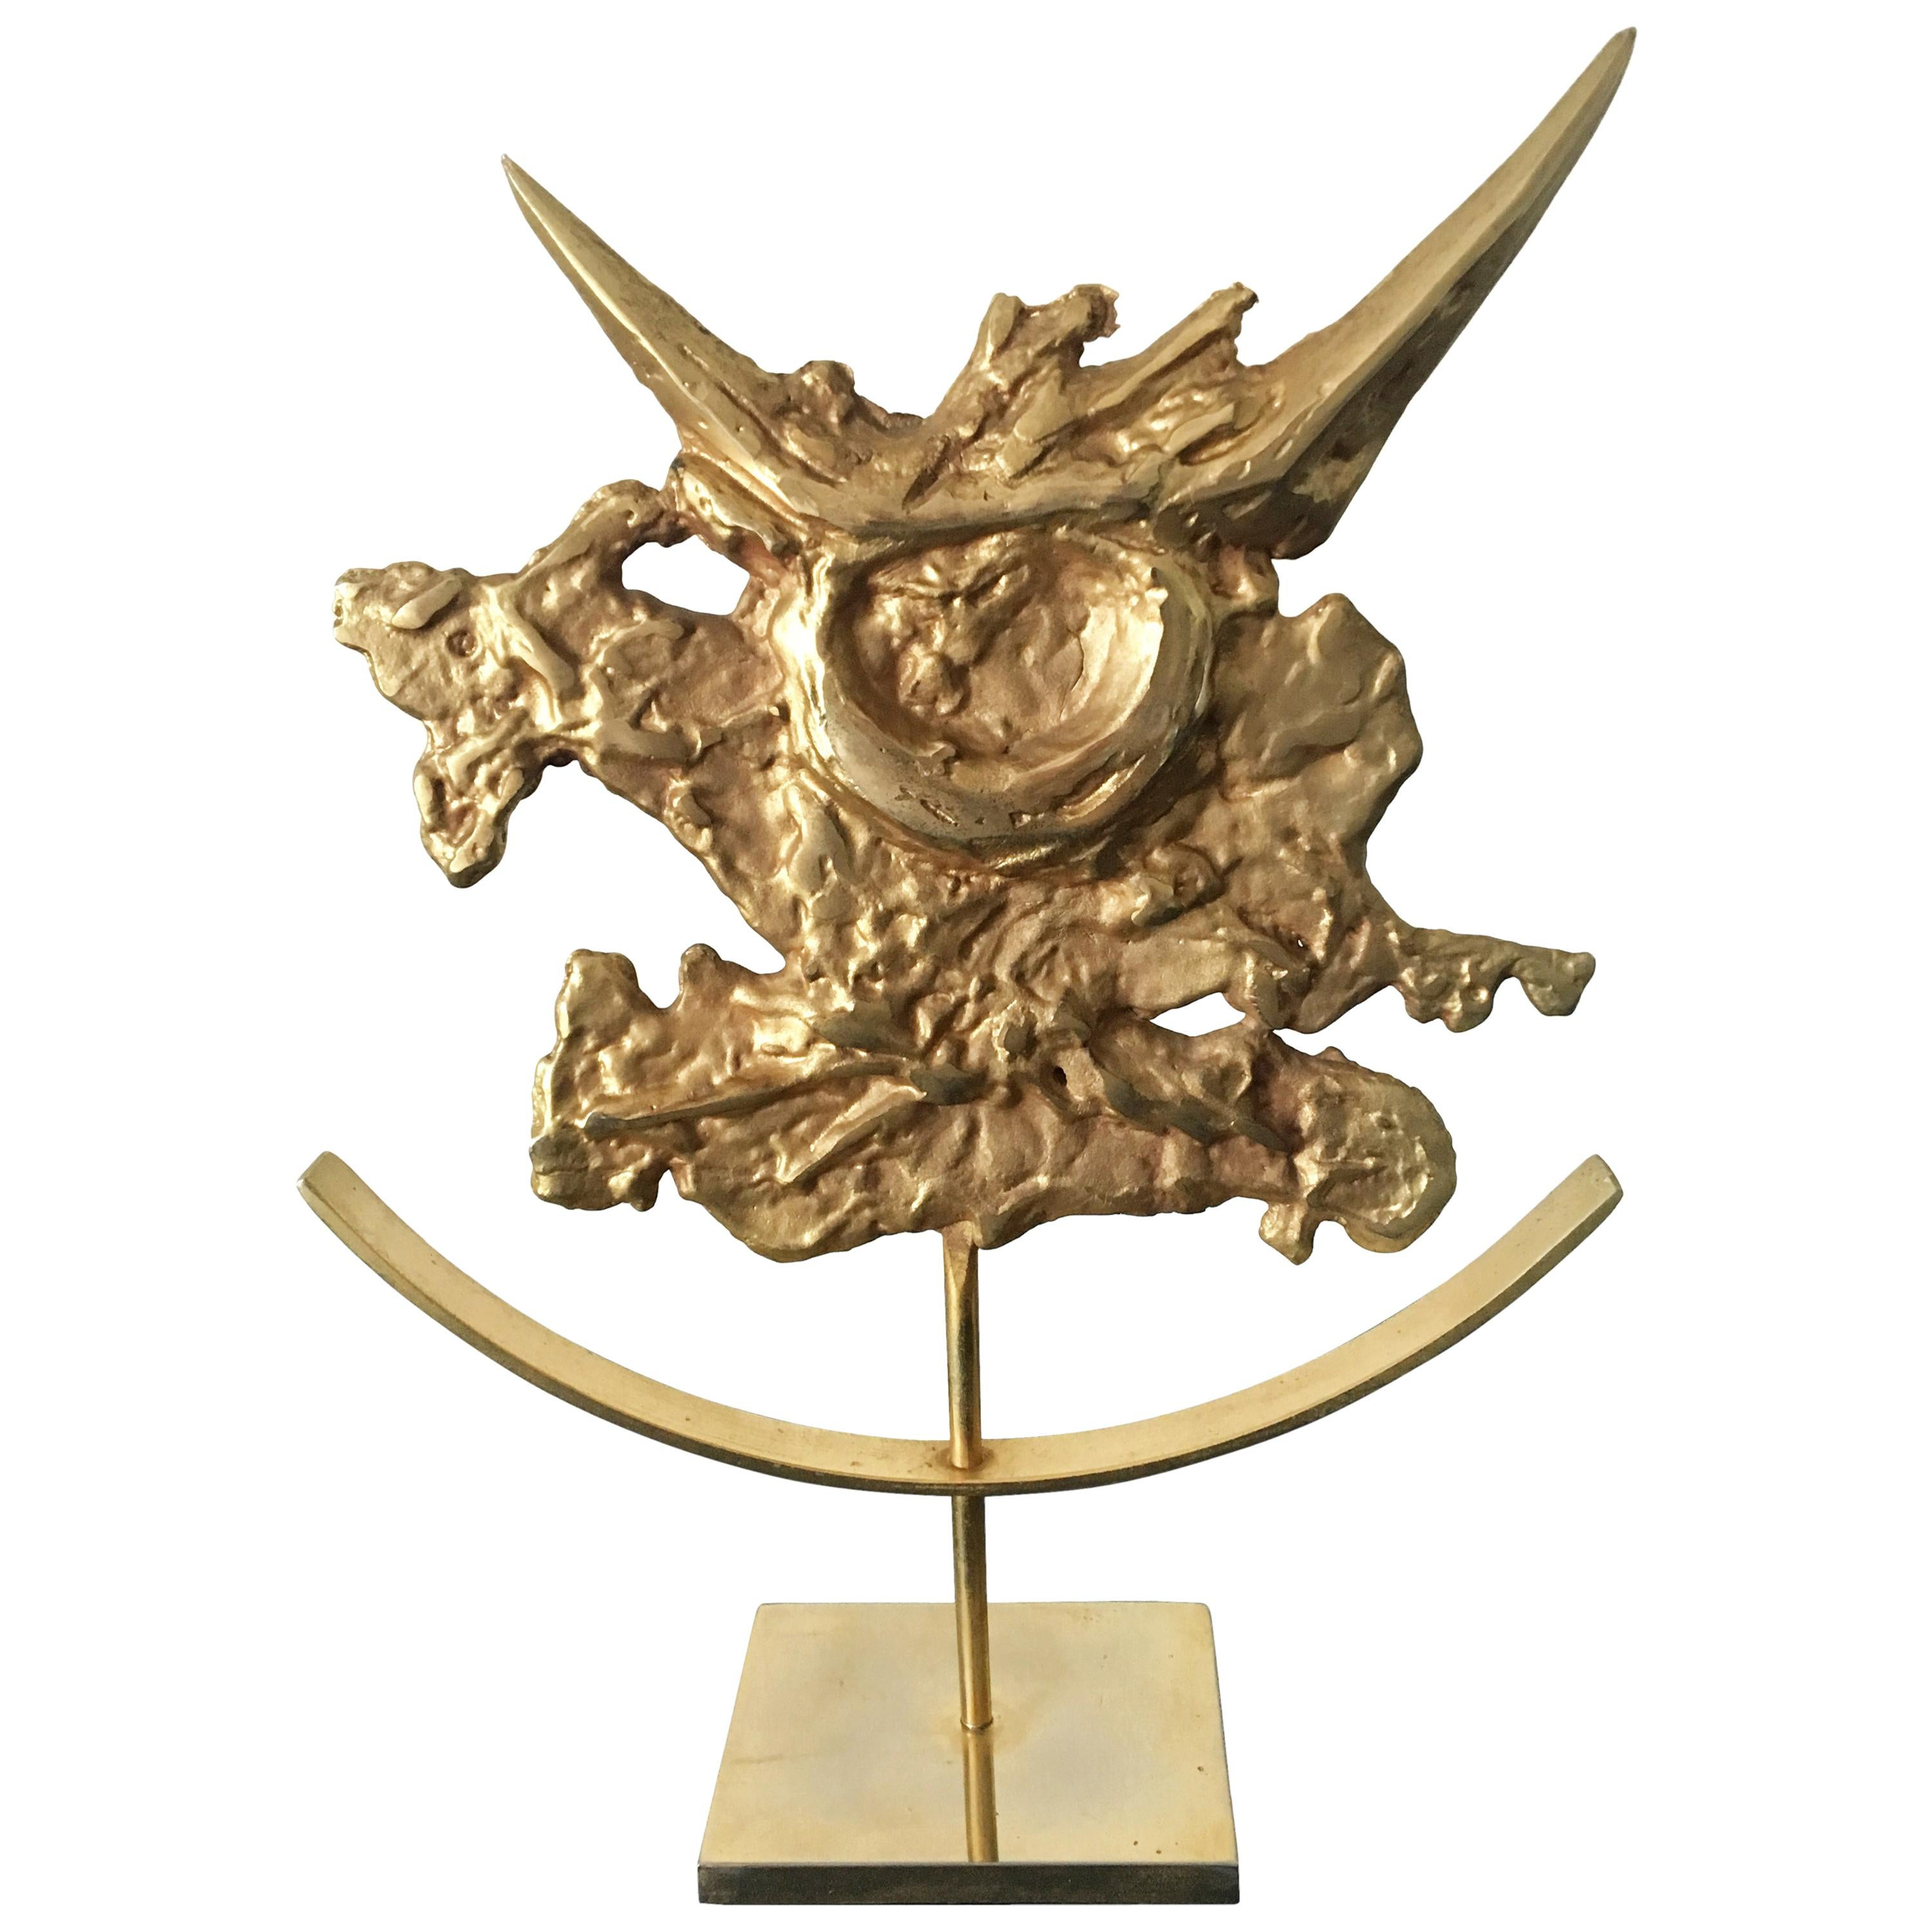 Philippe Cheverny Taurus Zodiac Sculpture Signed, Gilded Cast Metal